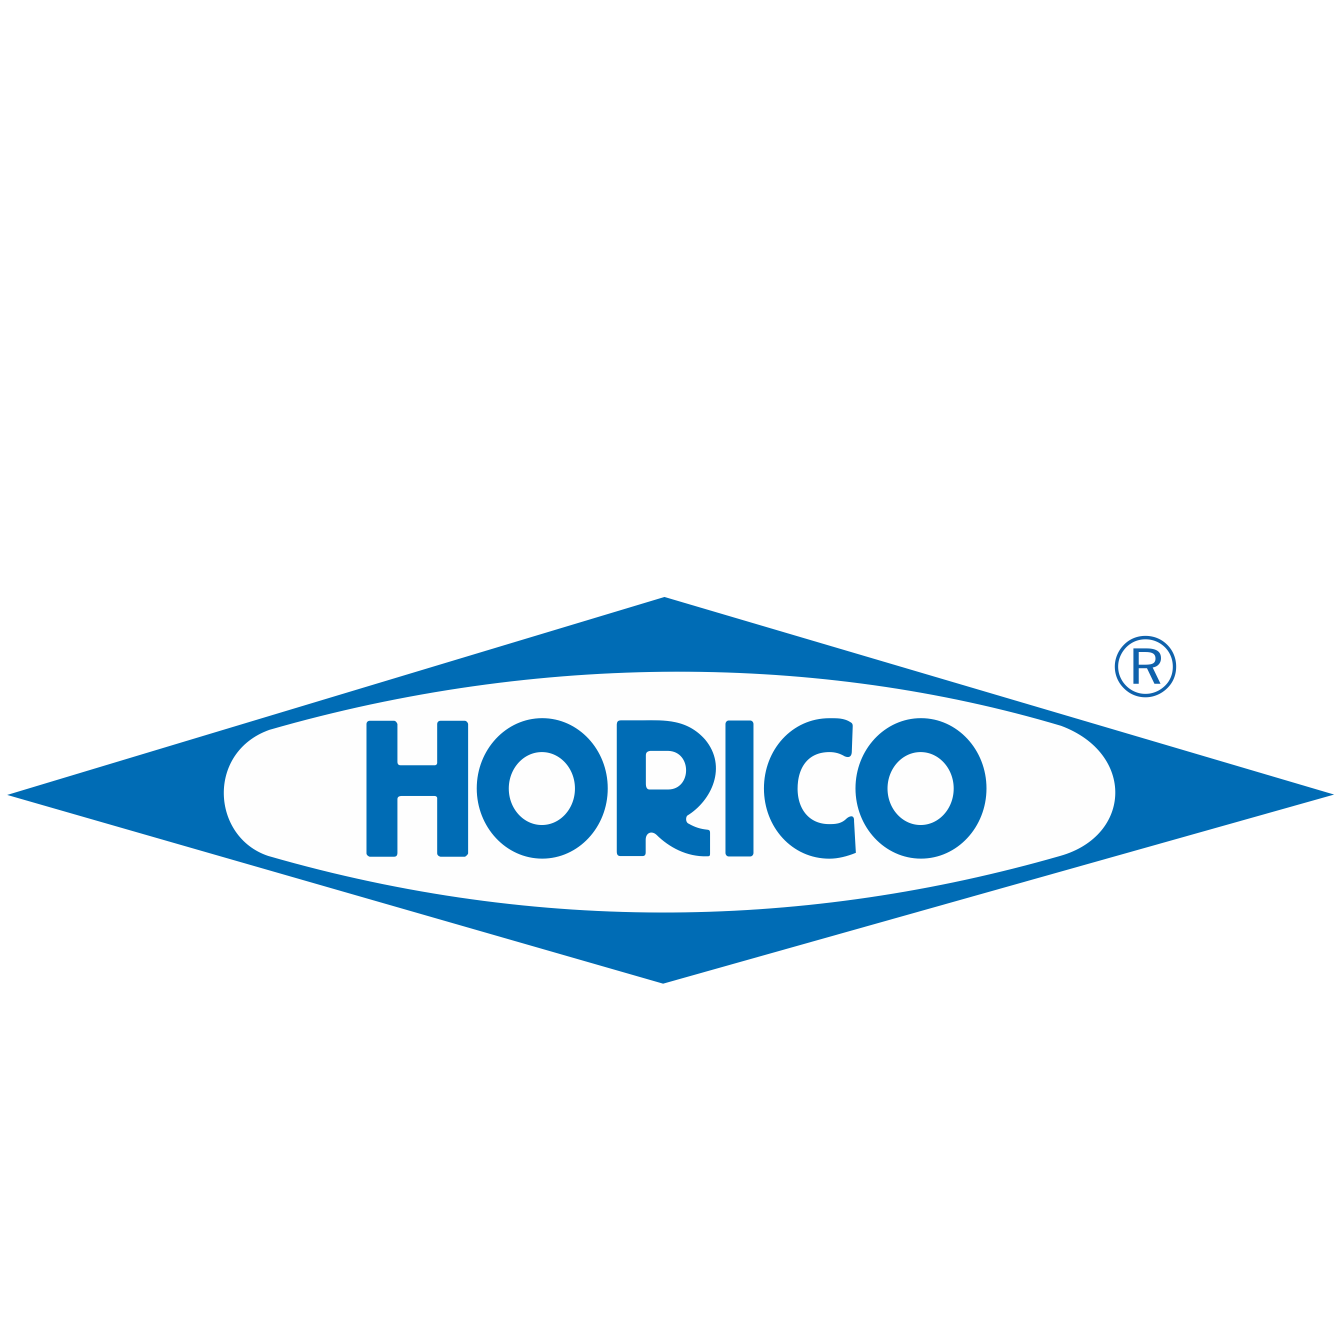 horico.png